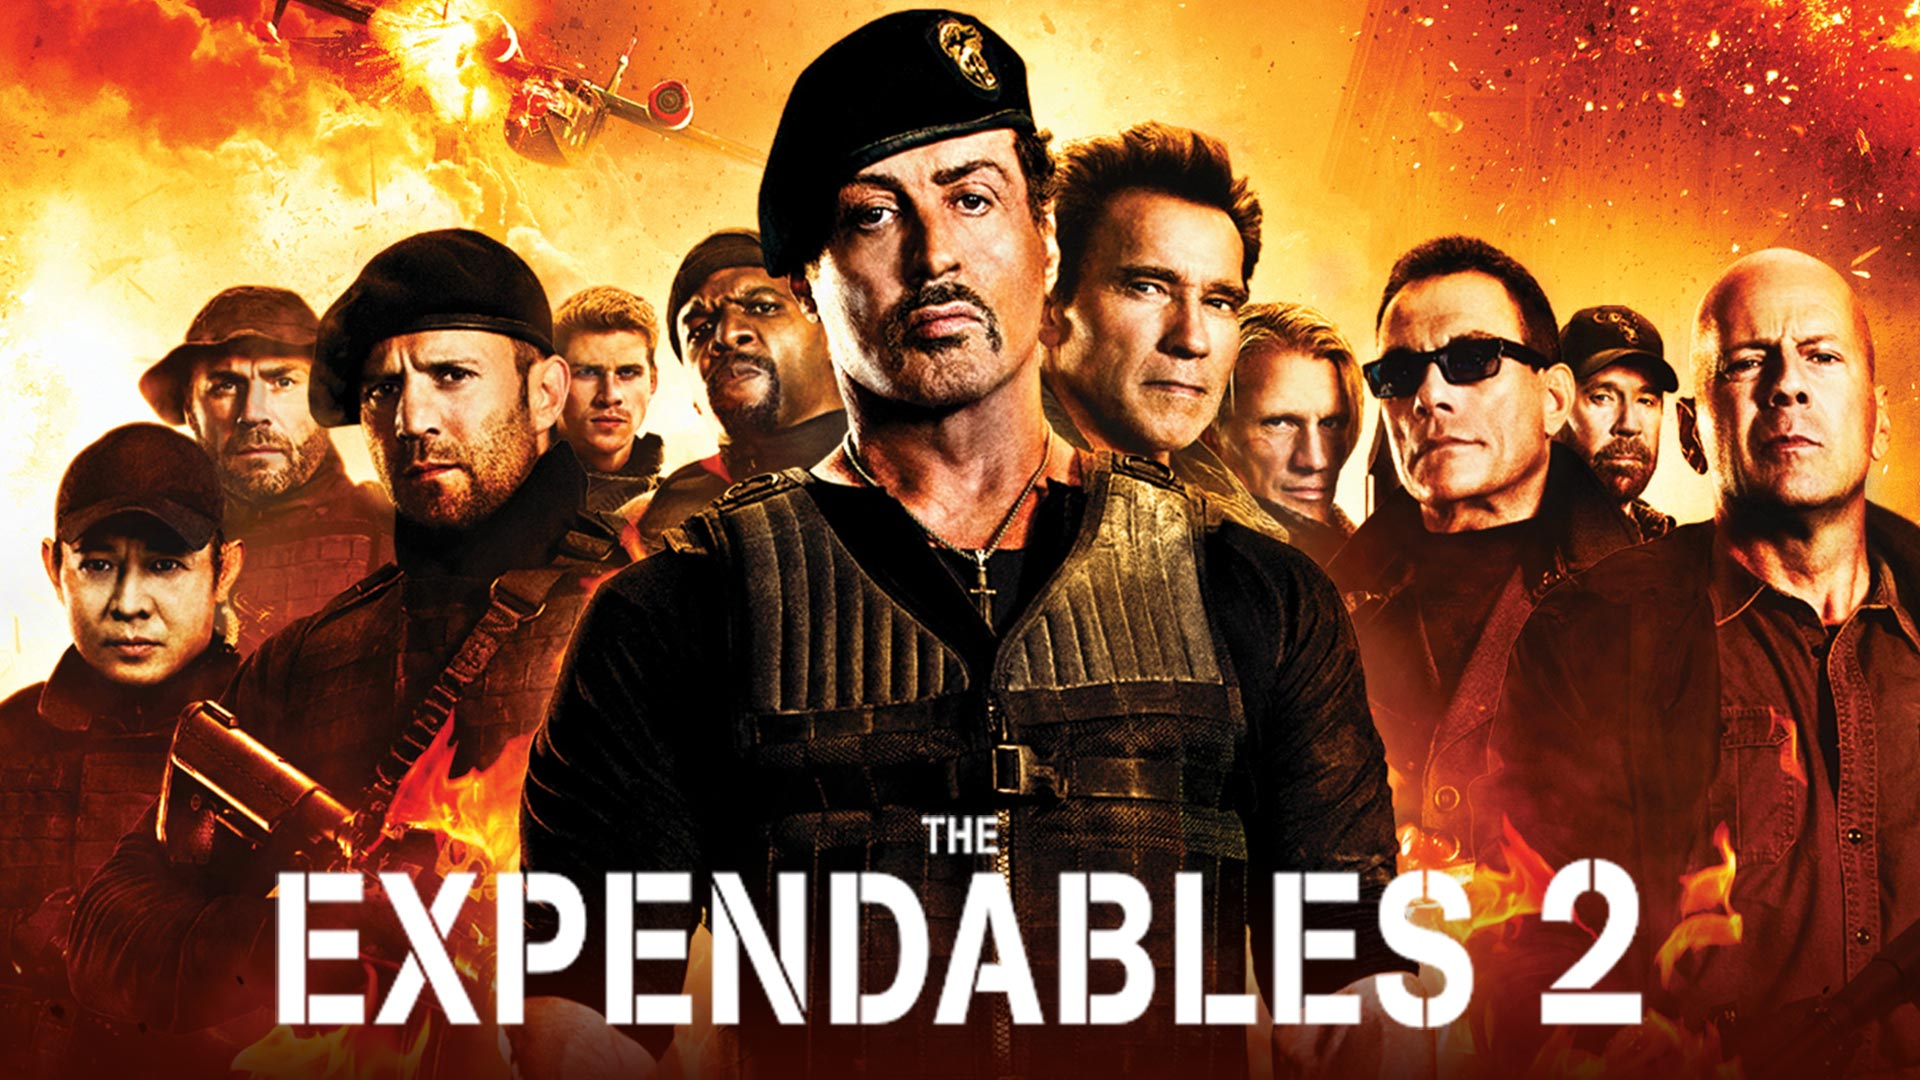 Expendables 2, The (4K UHD)